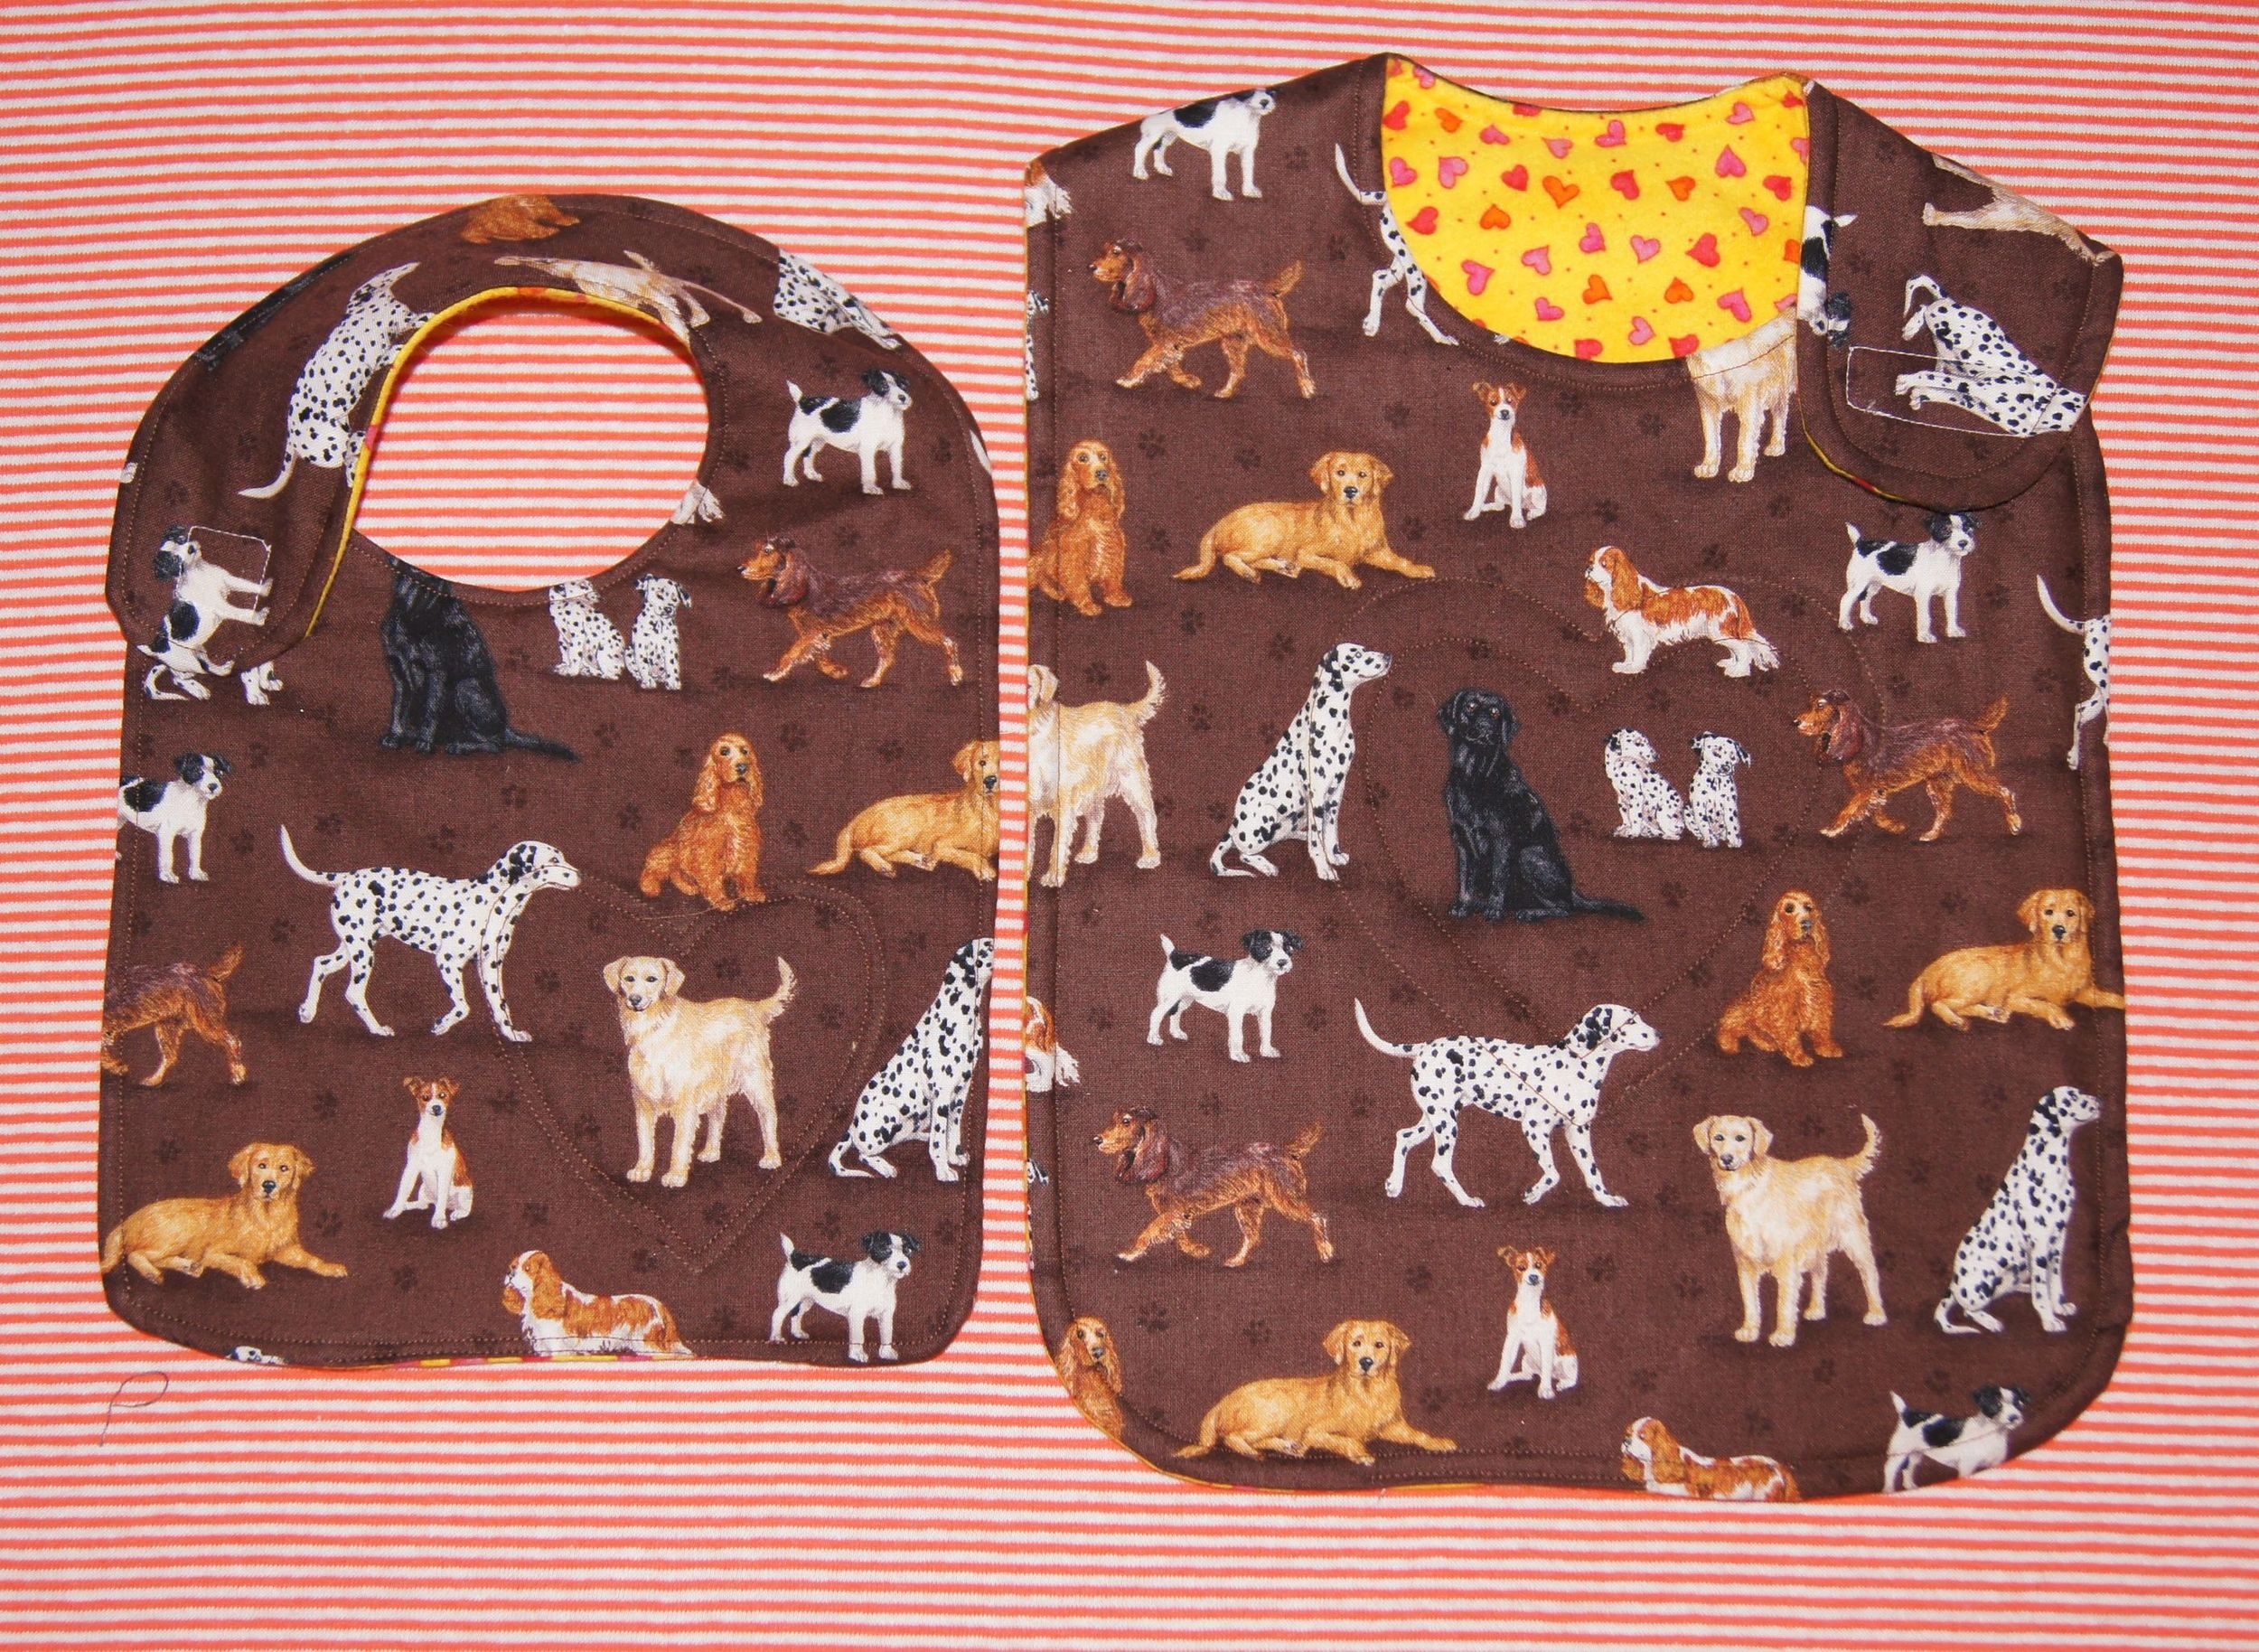 Infant and toddler sized bibs